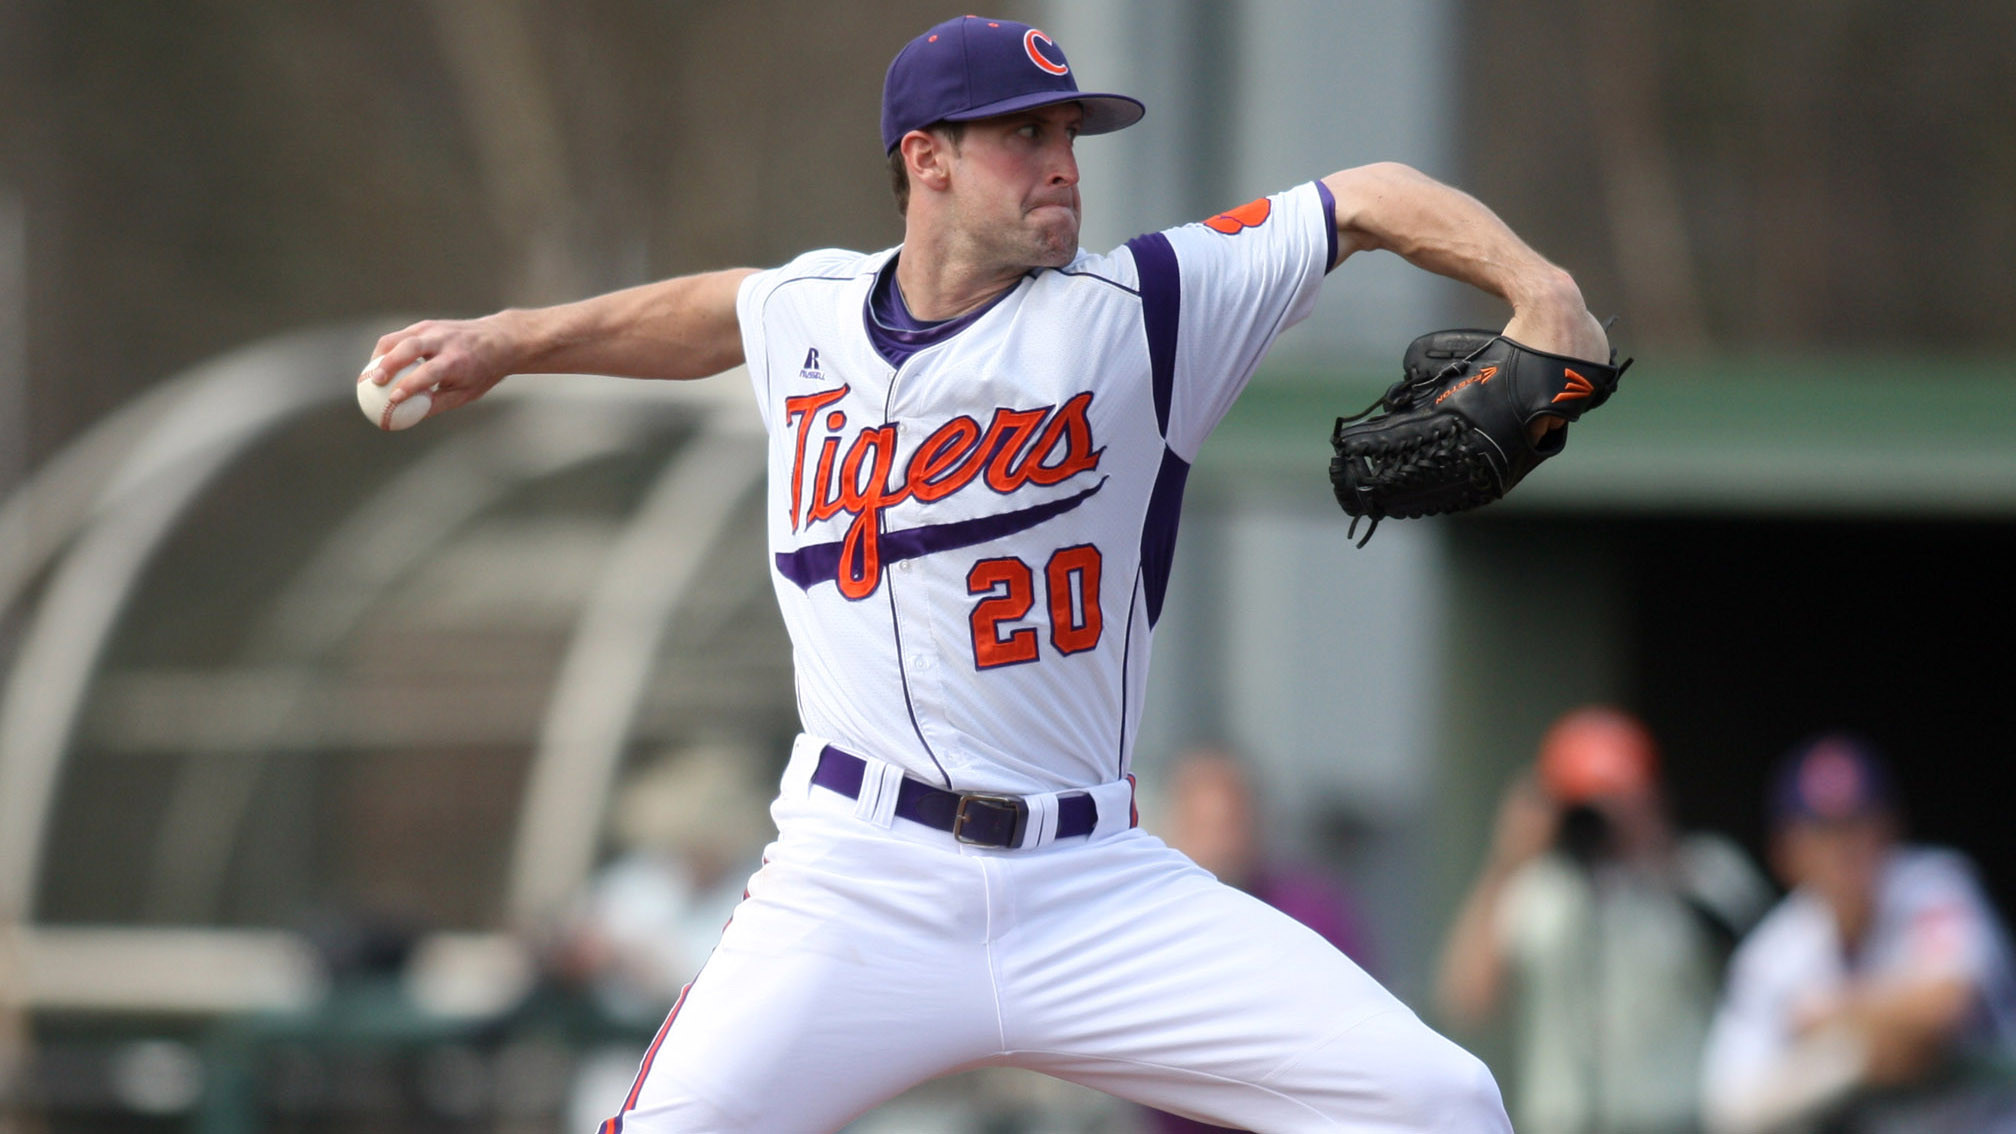 Clemson Baseball Video: Firth Discusses Win Over #1 North Carolina